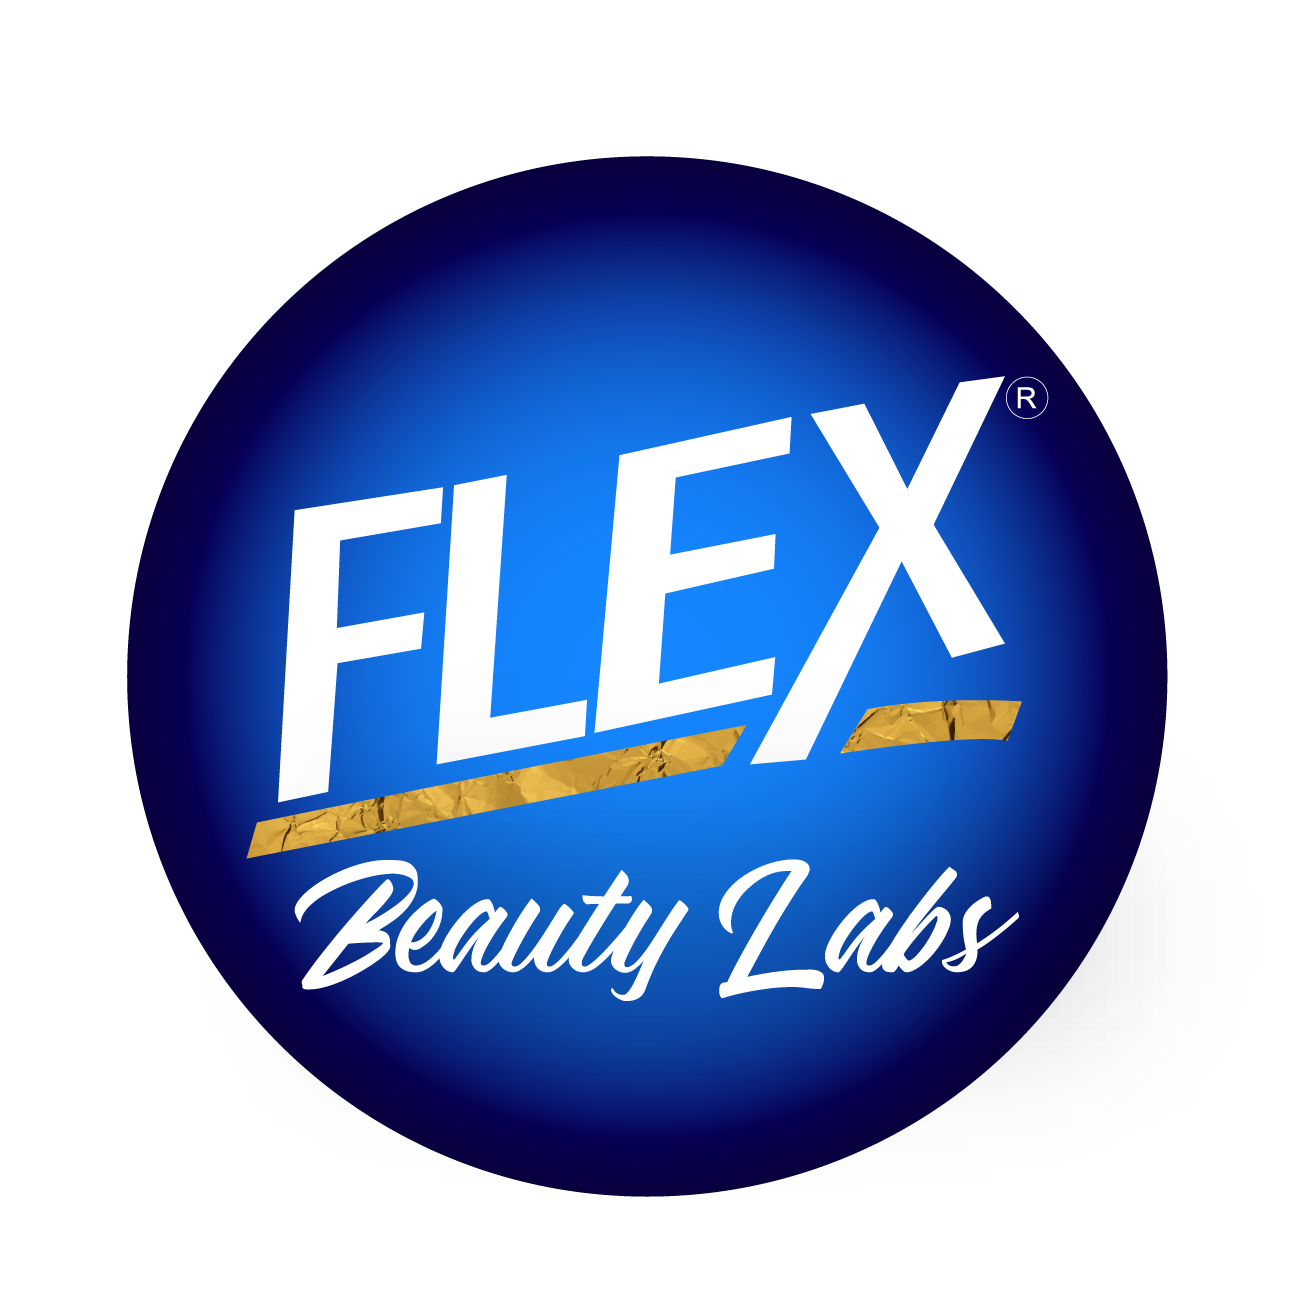 FLEX-UPDATED-LOGO